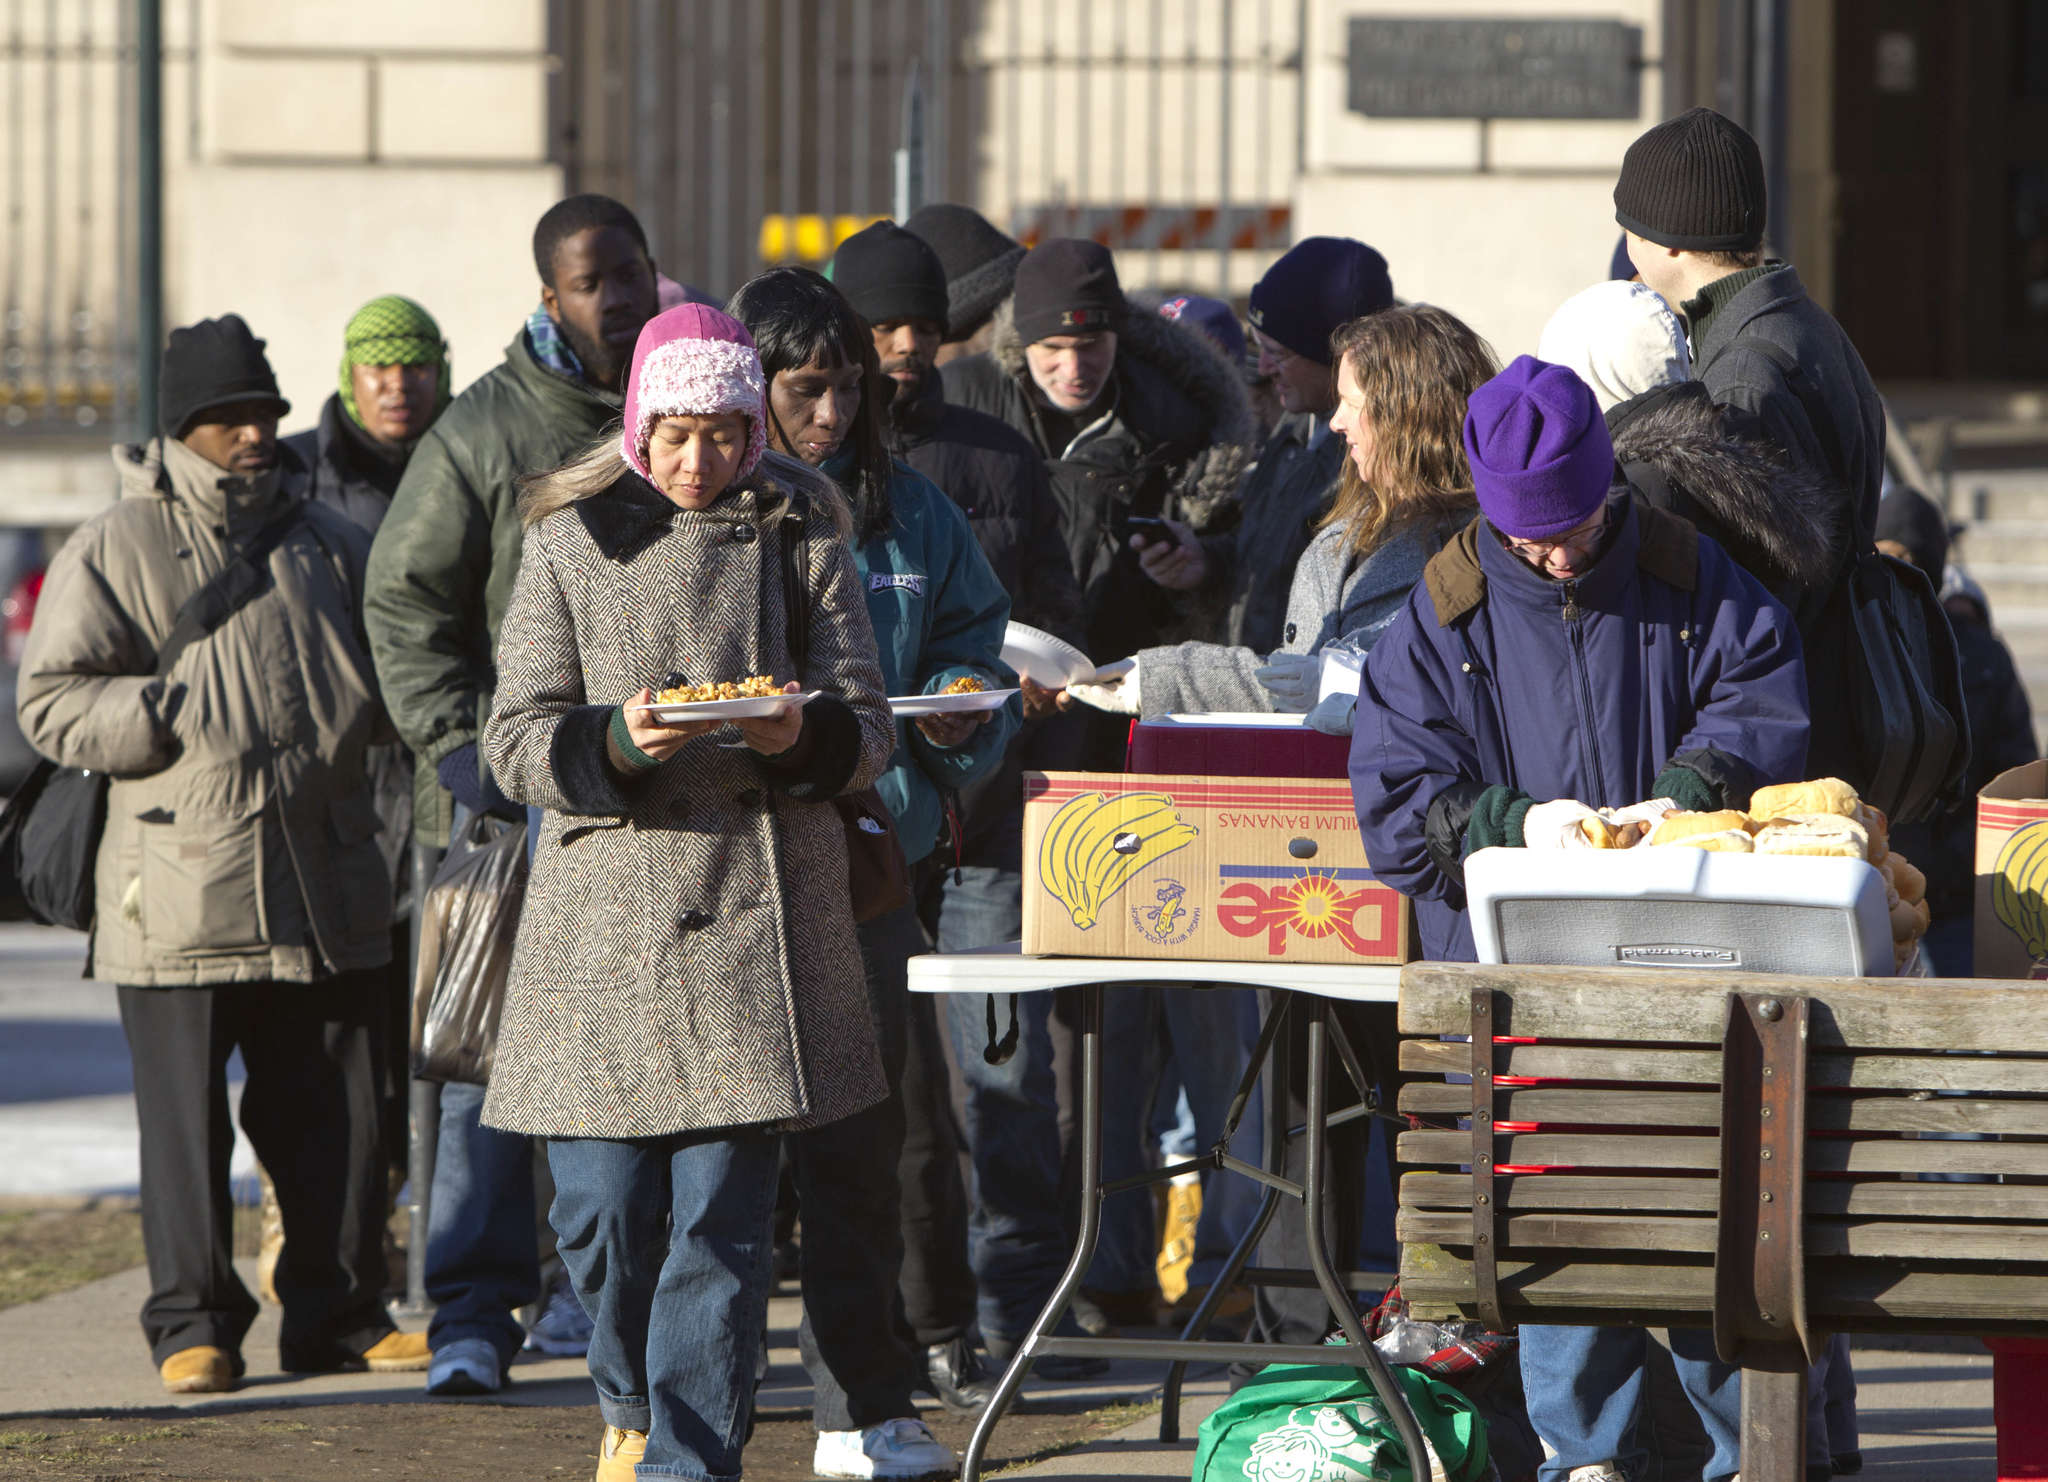 In this 2012 photo, the poor gather in Center City to receive food offered by Philly Restart: Mayor Kenney has lifted the ban on feeding the homeless on the Parkway. DAVID M WARREN / Staff Photographer